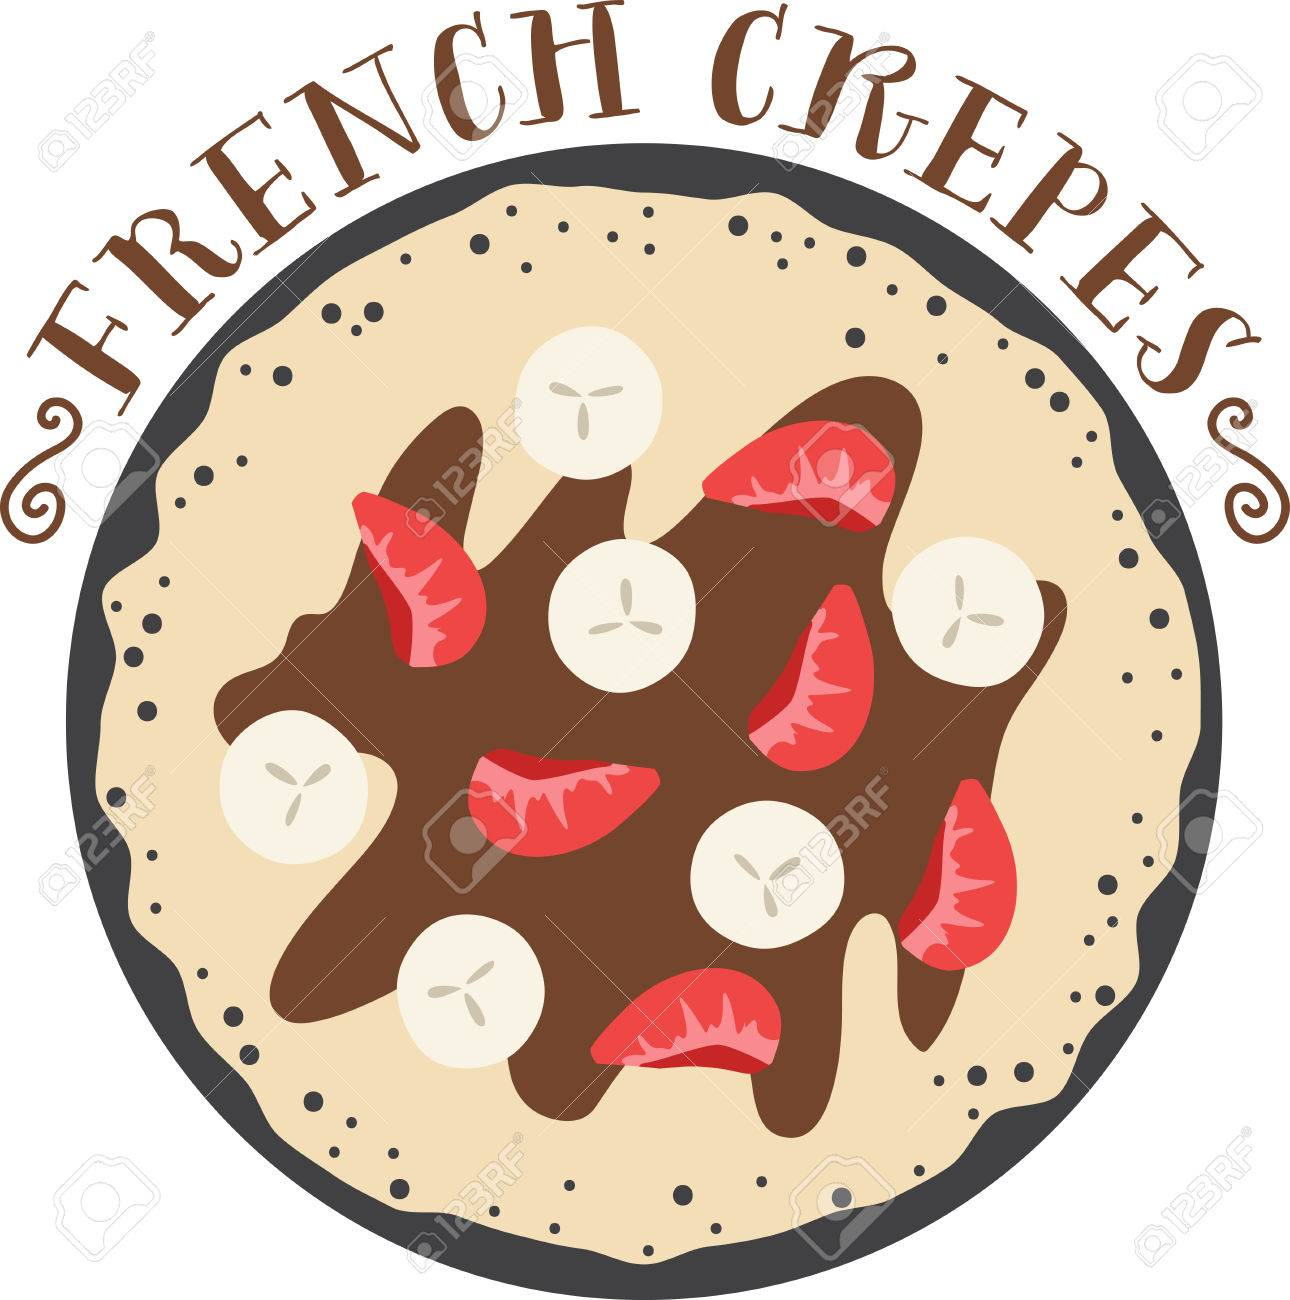 what a cool design of french crepes this would be great on an rh 123rf com Ice Cream French Crepes French Girl Clip Art